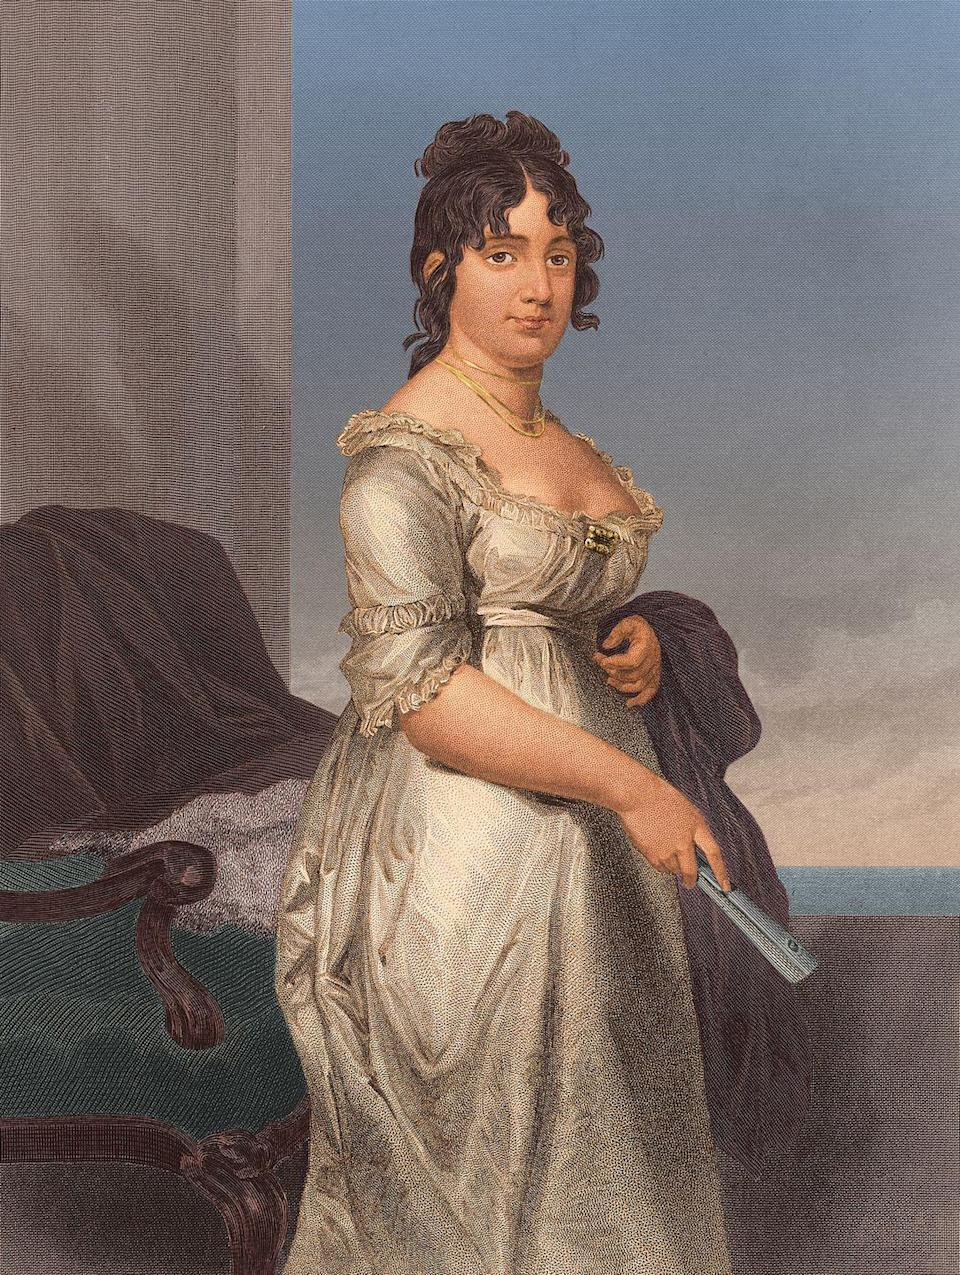 <p>Throwback to 1809. Dolley Madison was the wife of former president James Madison, and was often criticized for showing a little more cleavage than usual for the times. </p>